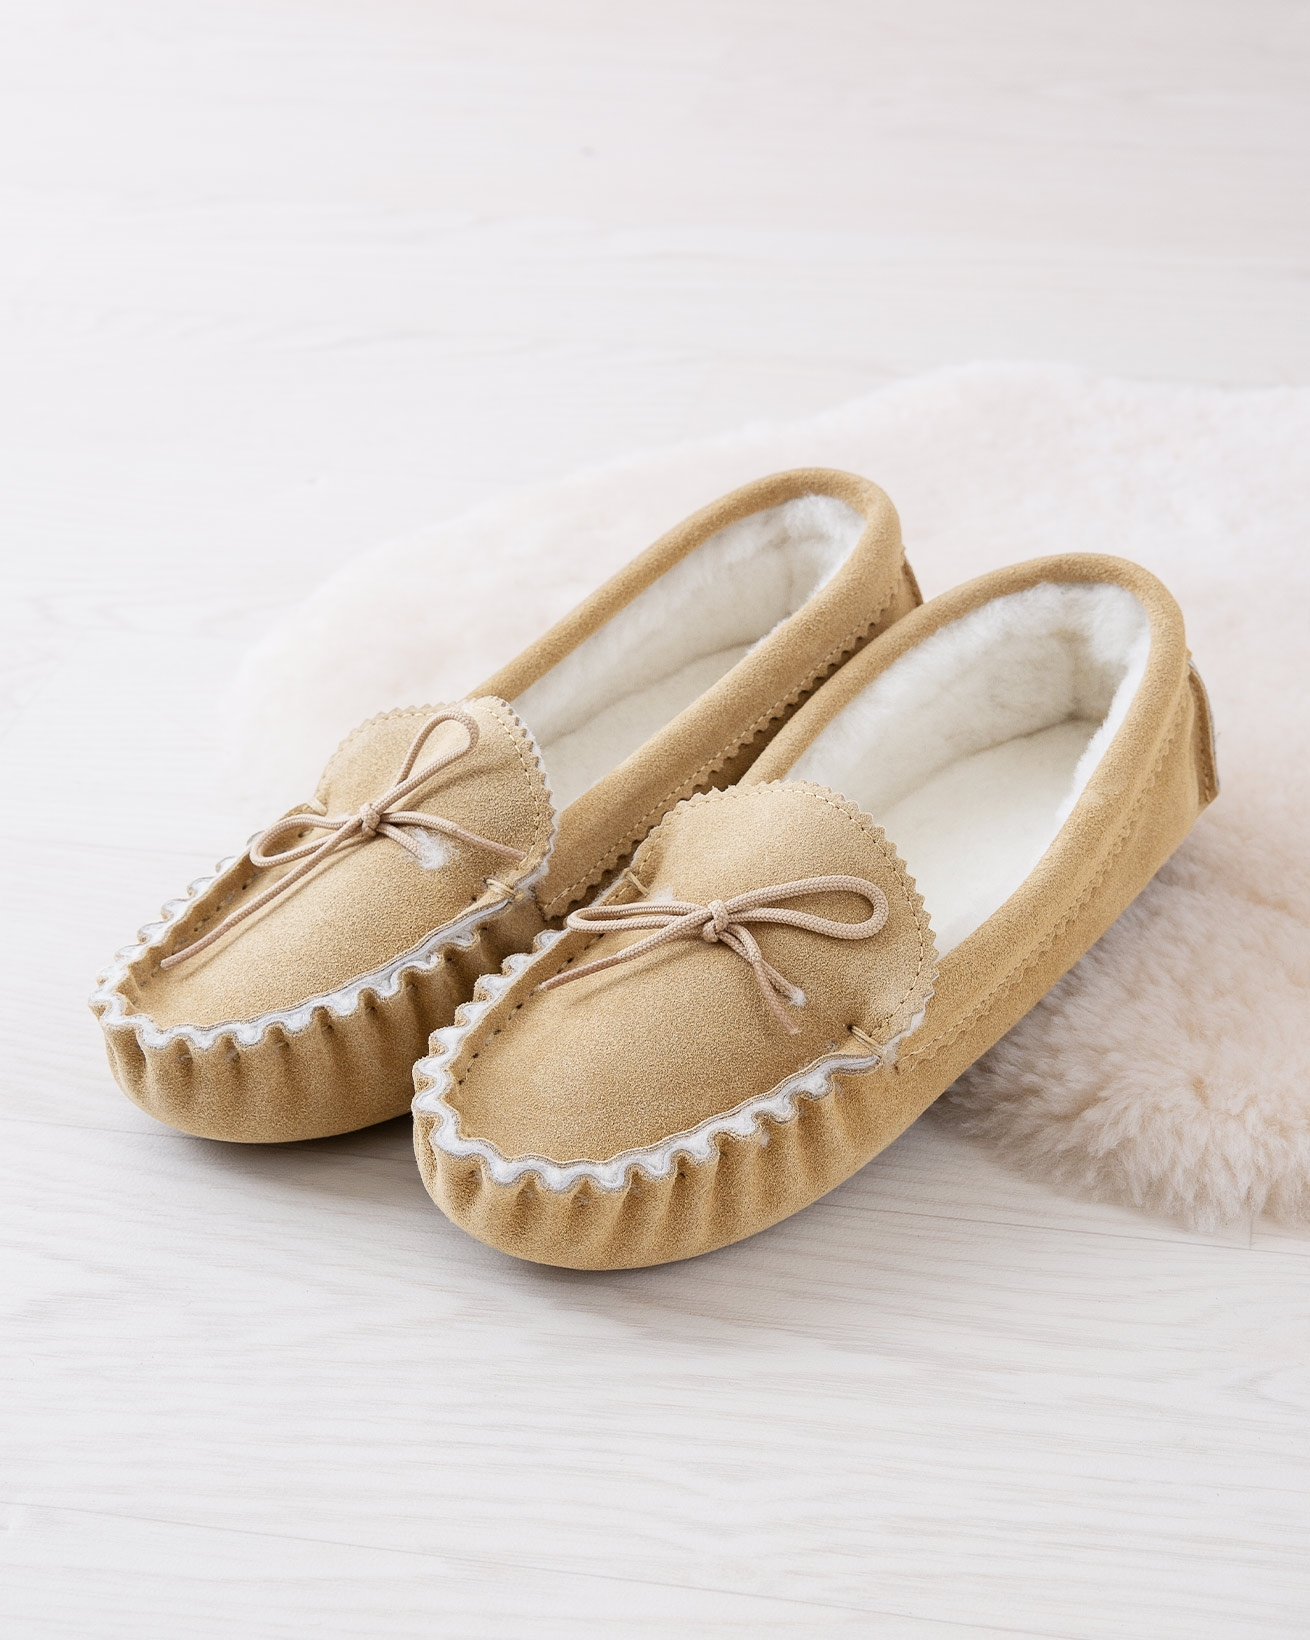 7132_mens-loafers-soft-sole_camel_lifestyle_lfs.jpg